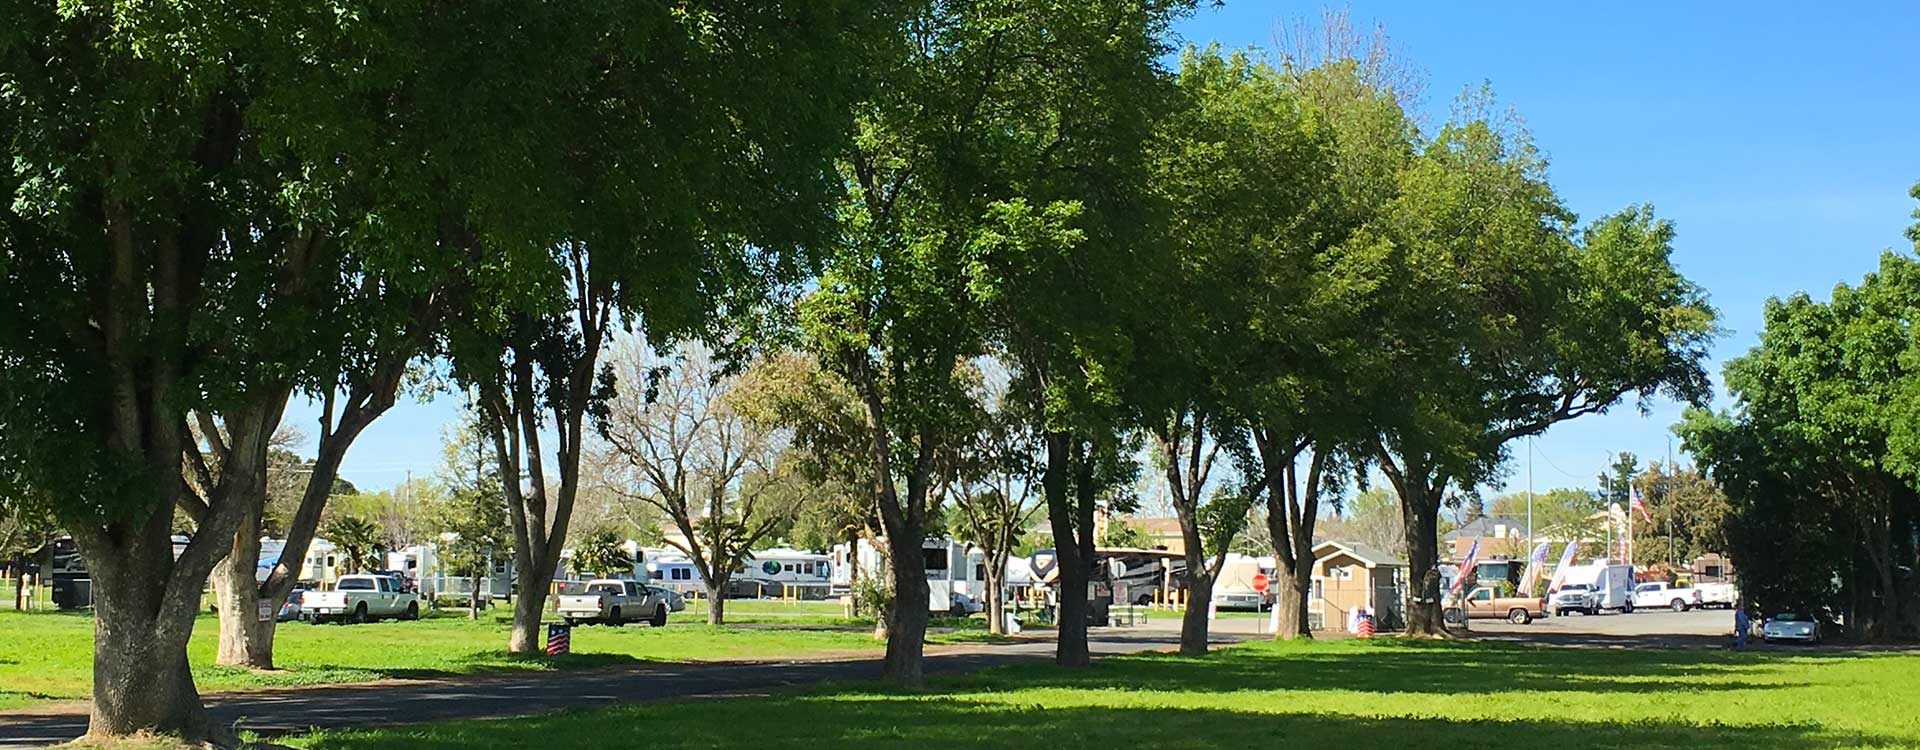 The Fairpark Rv At Alameda County Fairgrounds In The